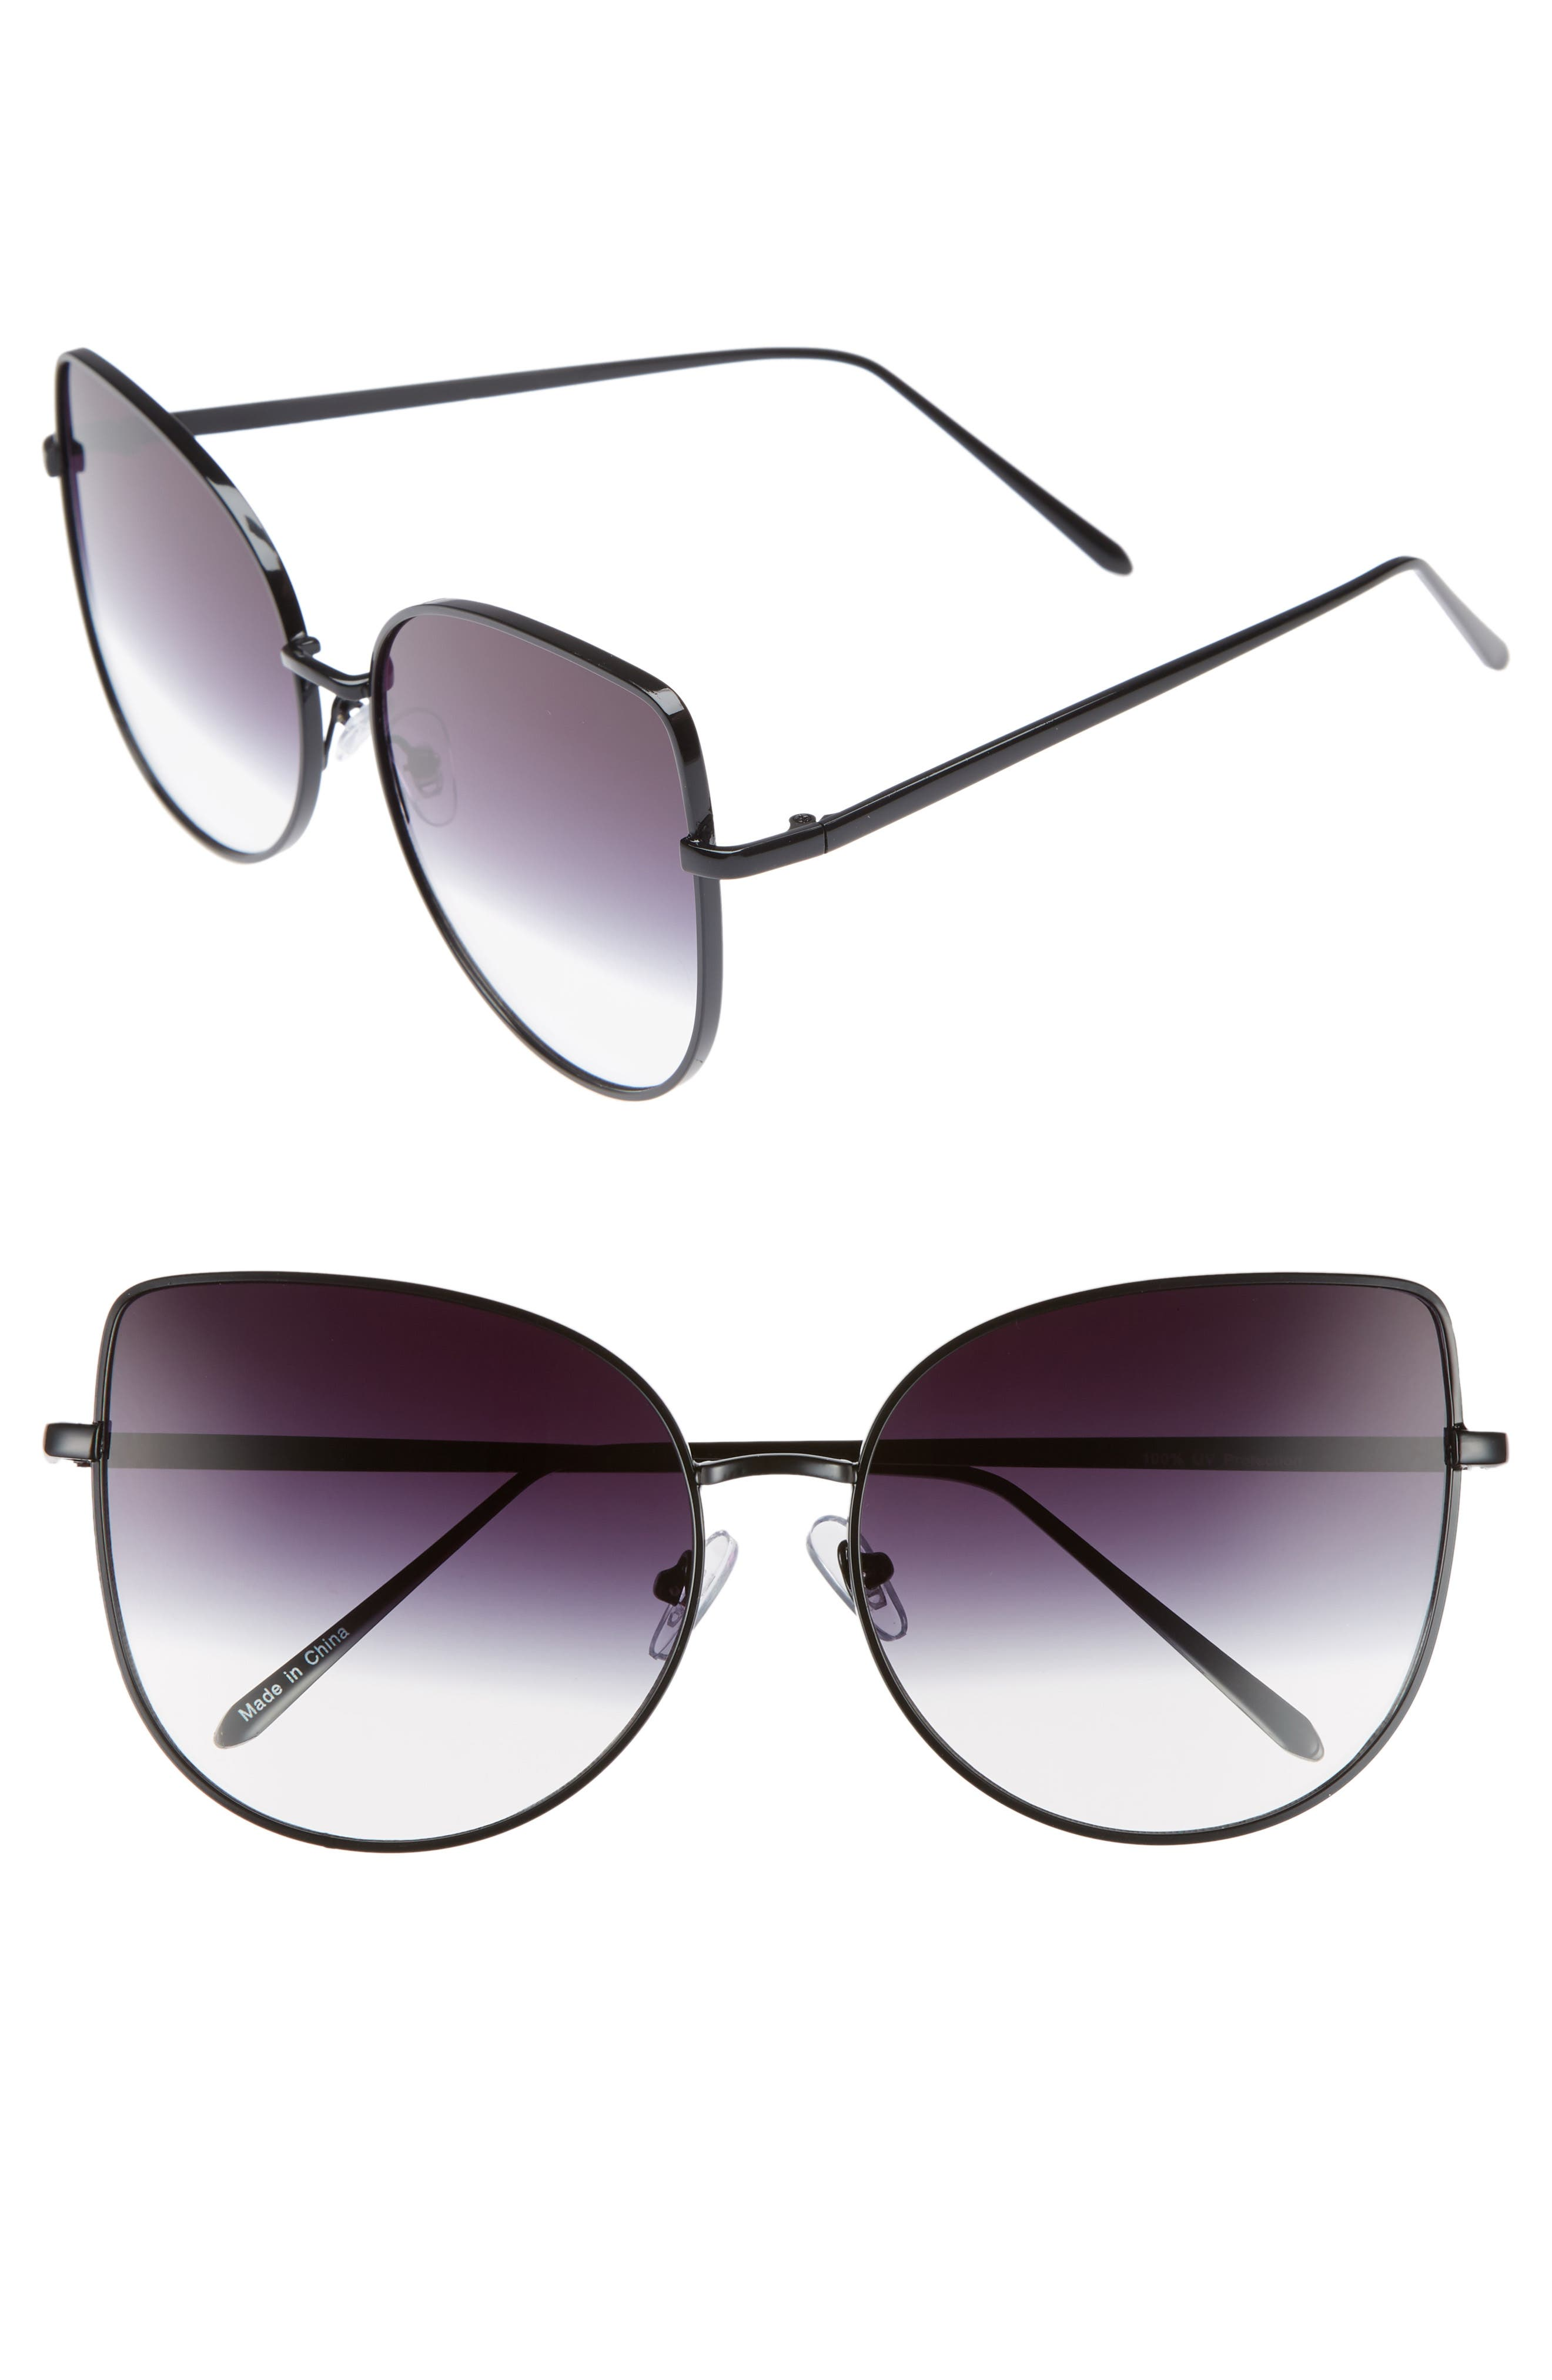 60mm Metal Cat Eye Sunglasses,                         Main,                         color, Black/ Fade To Clear